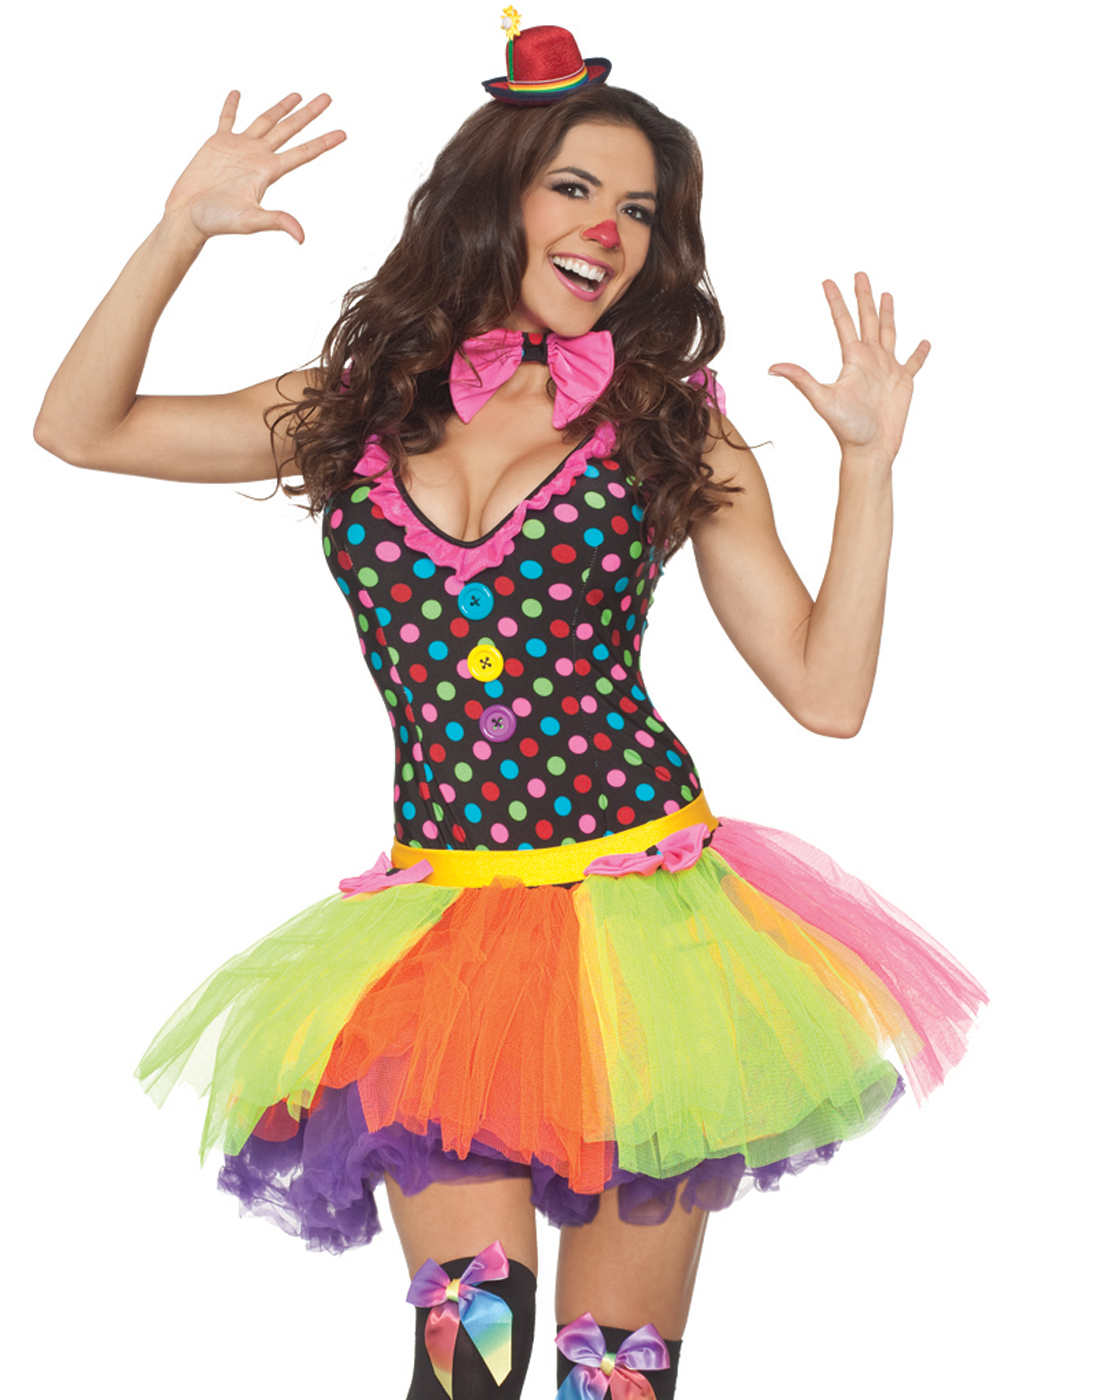 Lowest Price On Sexy Halloween Party Costumes, Shop For Circus and Party Costume at Spicy Lingerie for your Halloween Party Costumes.